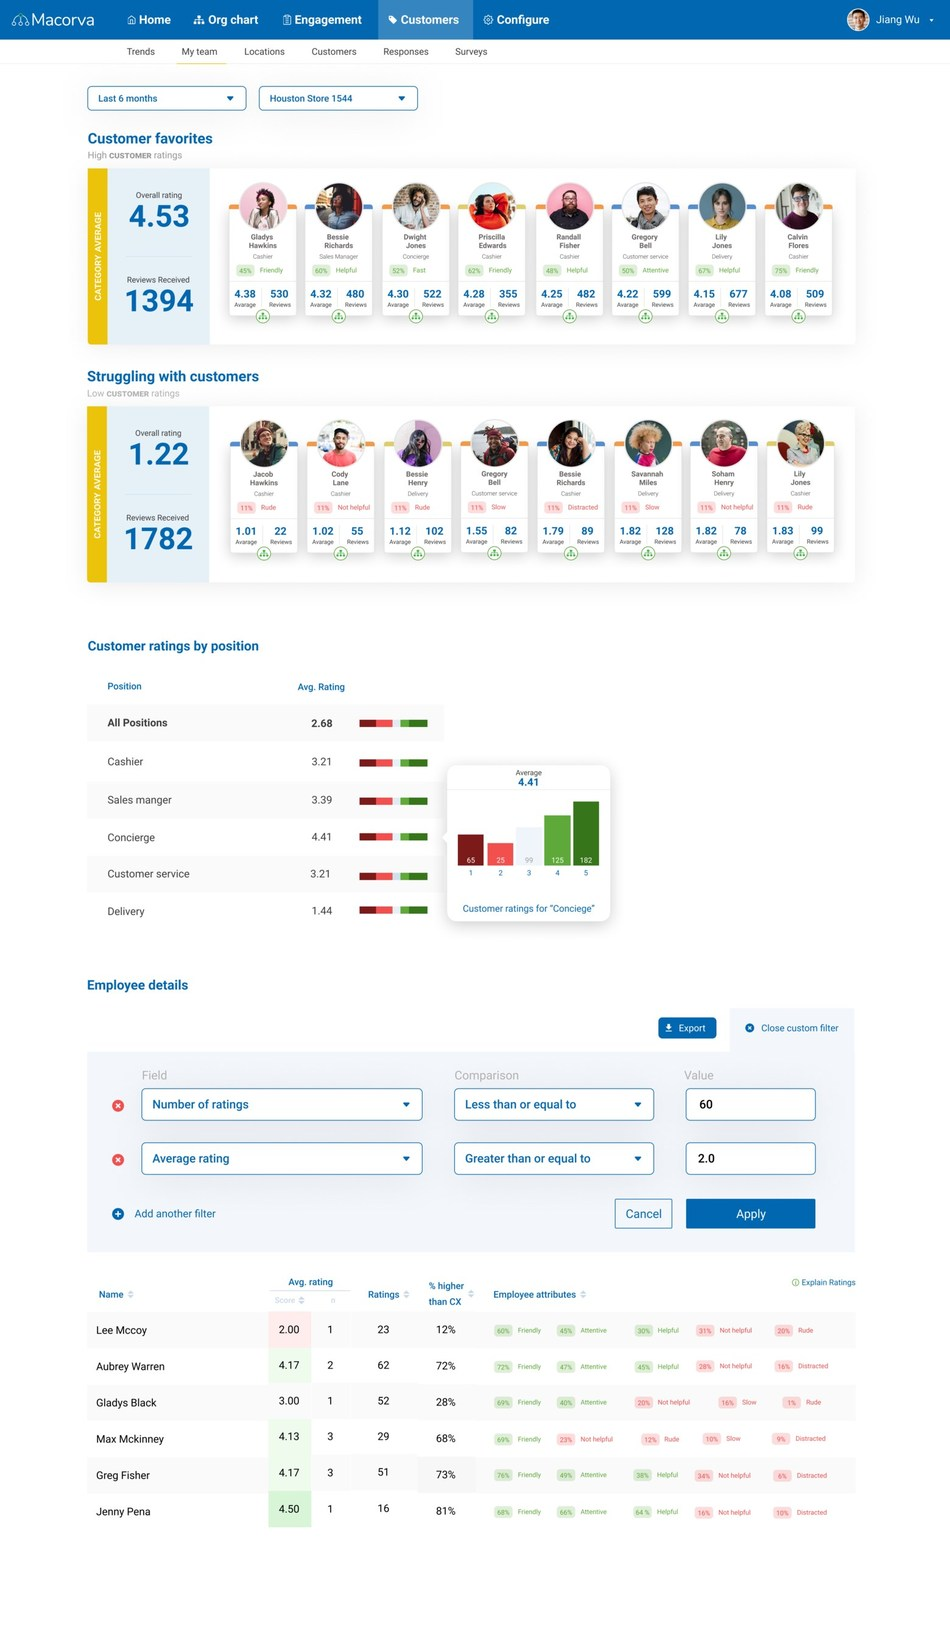 Example of the Macorva CX dashboard